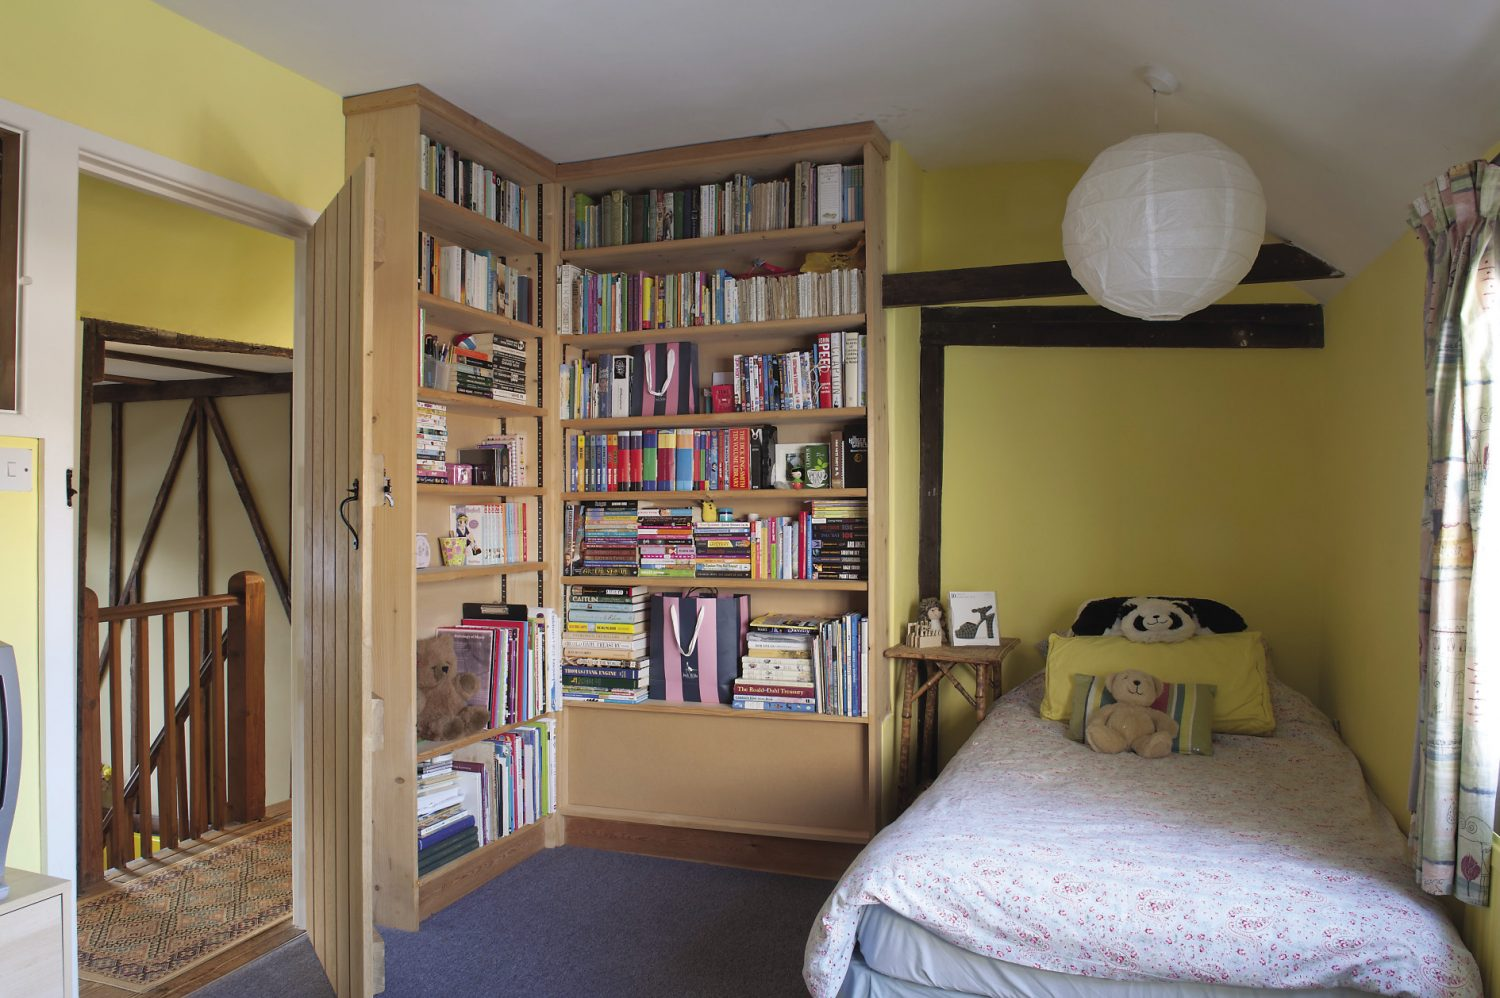 """Oliver and Fiona's teenage daughter's room is astonishingly neat. """"She's very interested in Japanese ideas like Zen Buddhism and so everything has to be in its place,"""" explains Oliver. """"It's lucky that it happens to be a very tidy philosophy isn't it?"""""""